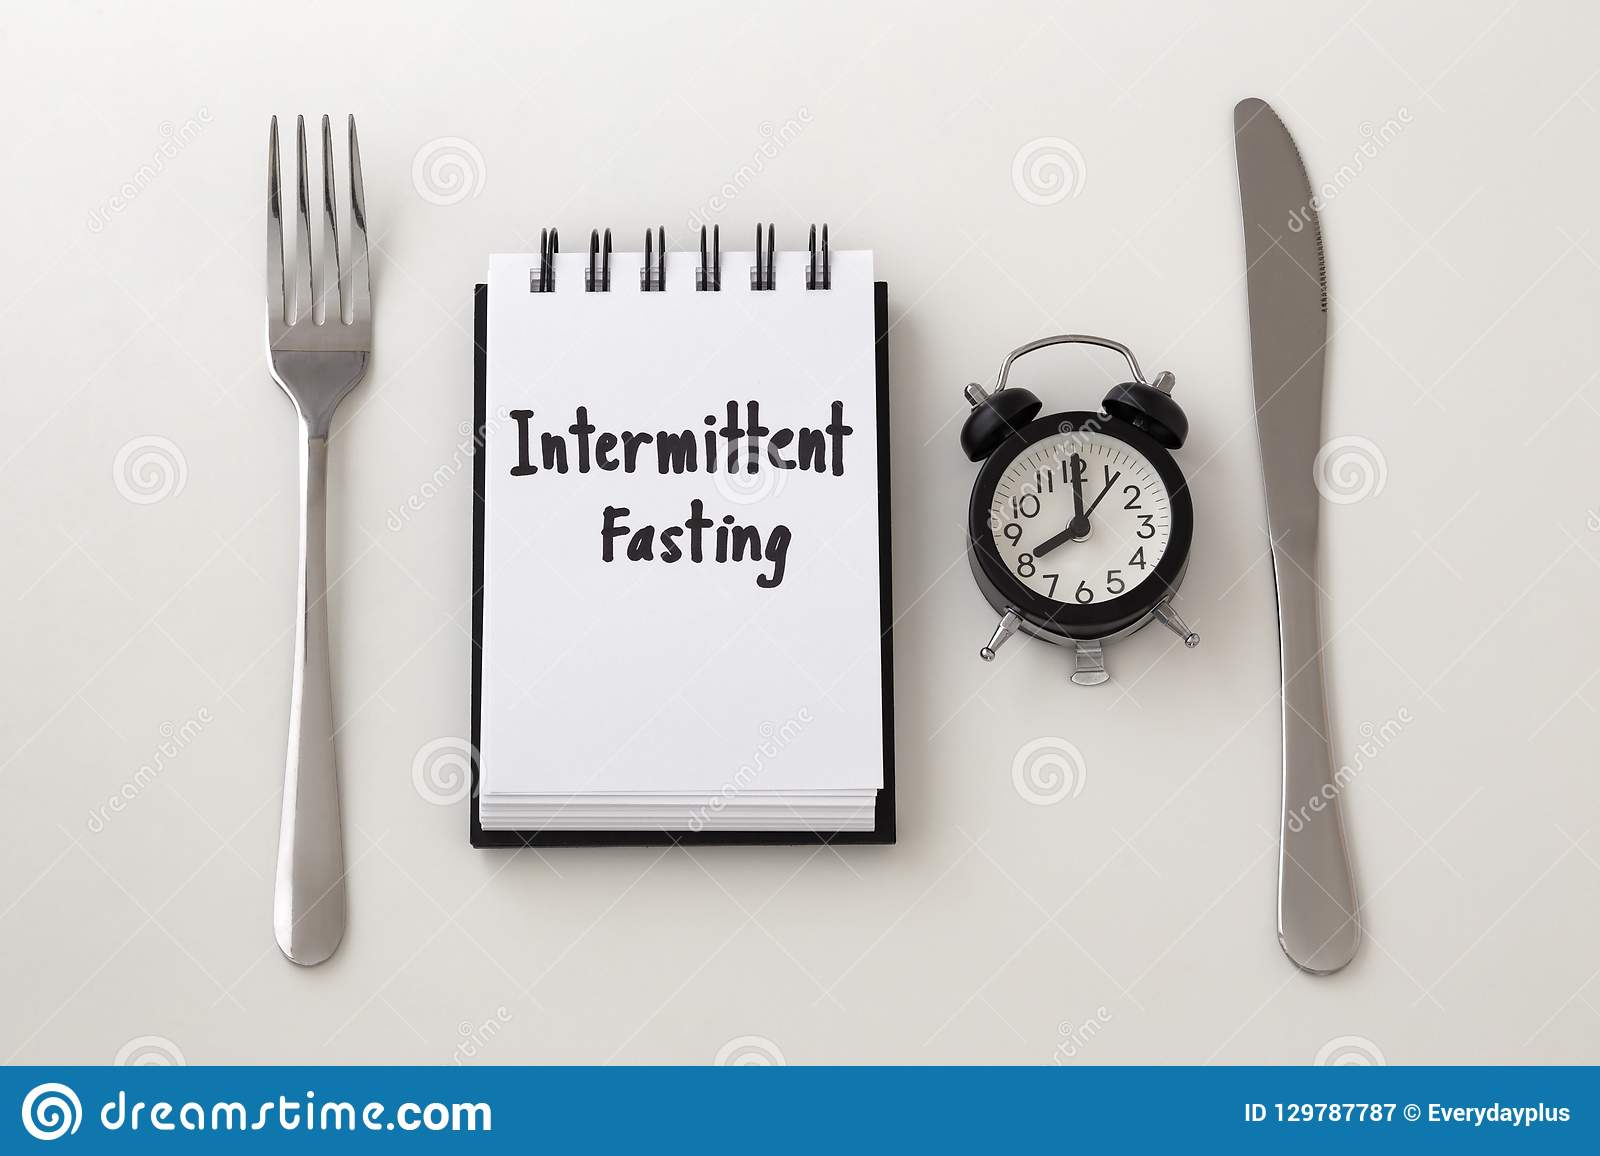 Intermittent Fasting Word On Notepad With Clock Stock Image